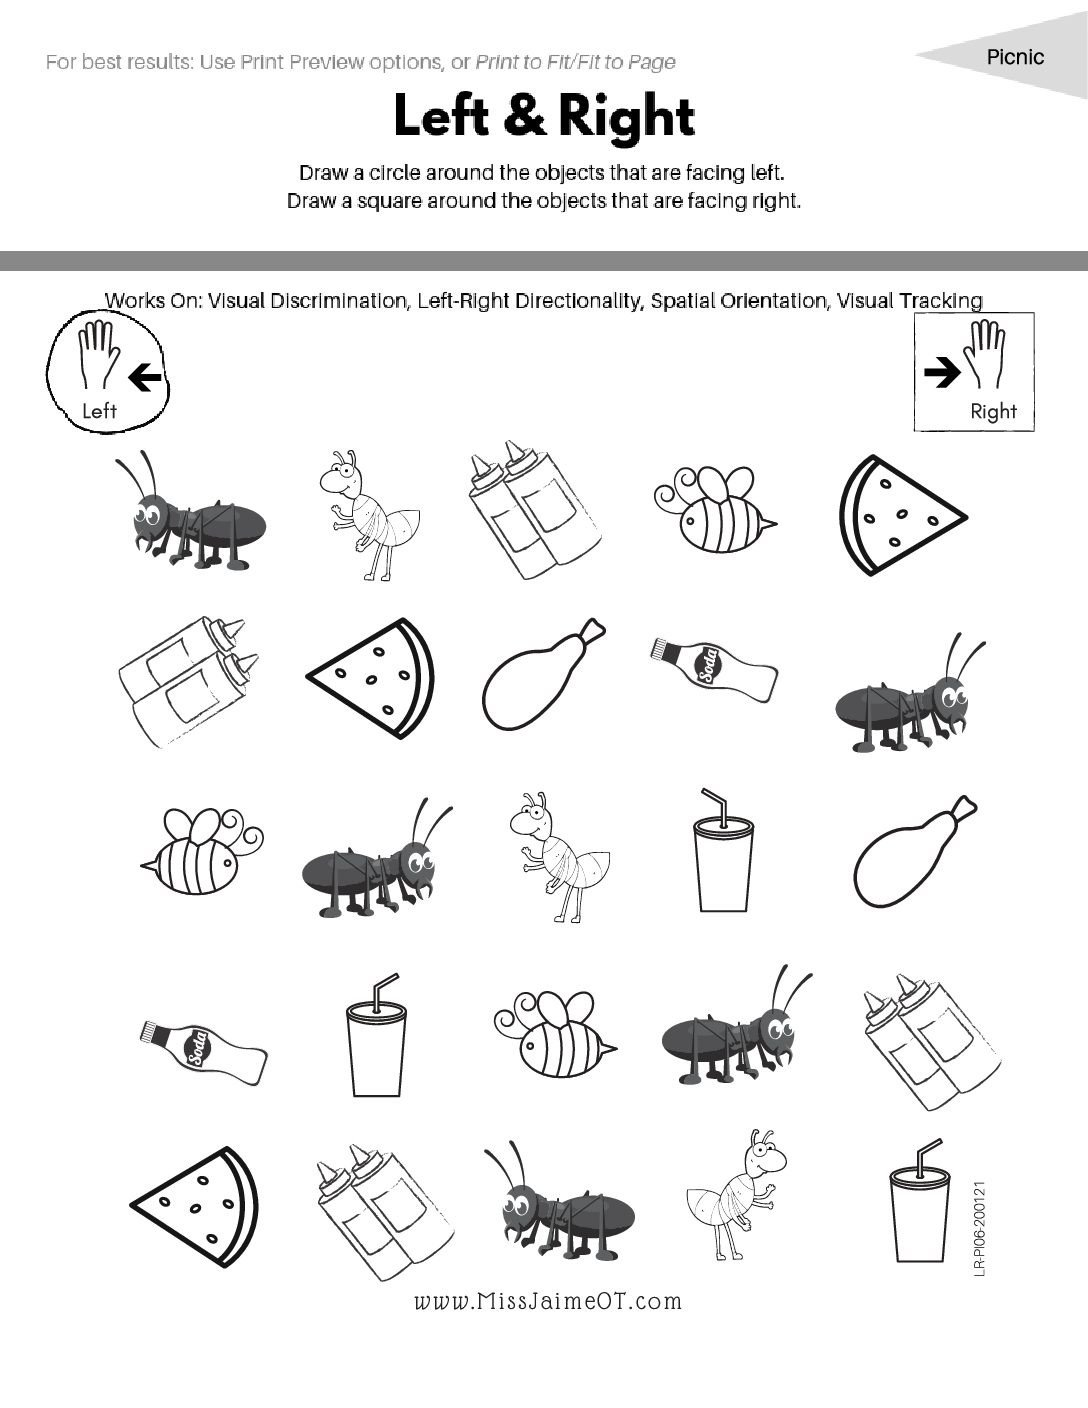 Picnic Left Right LR PI06 pdf